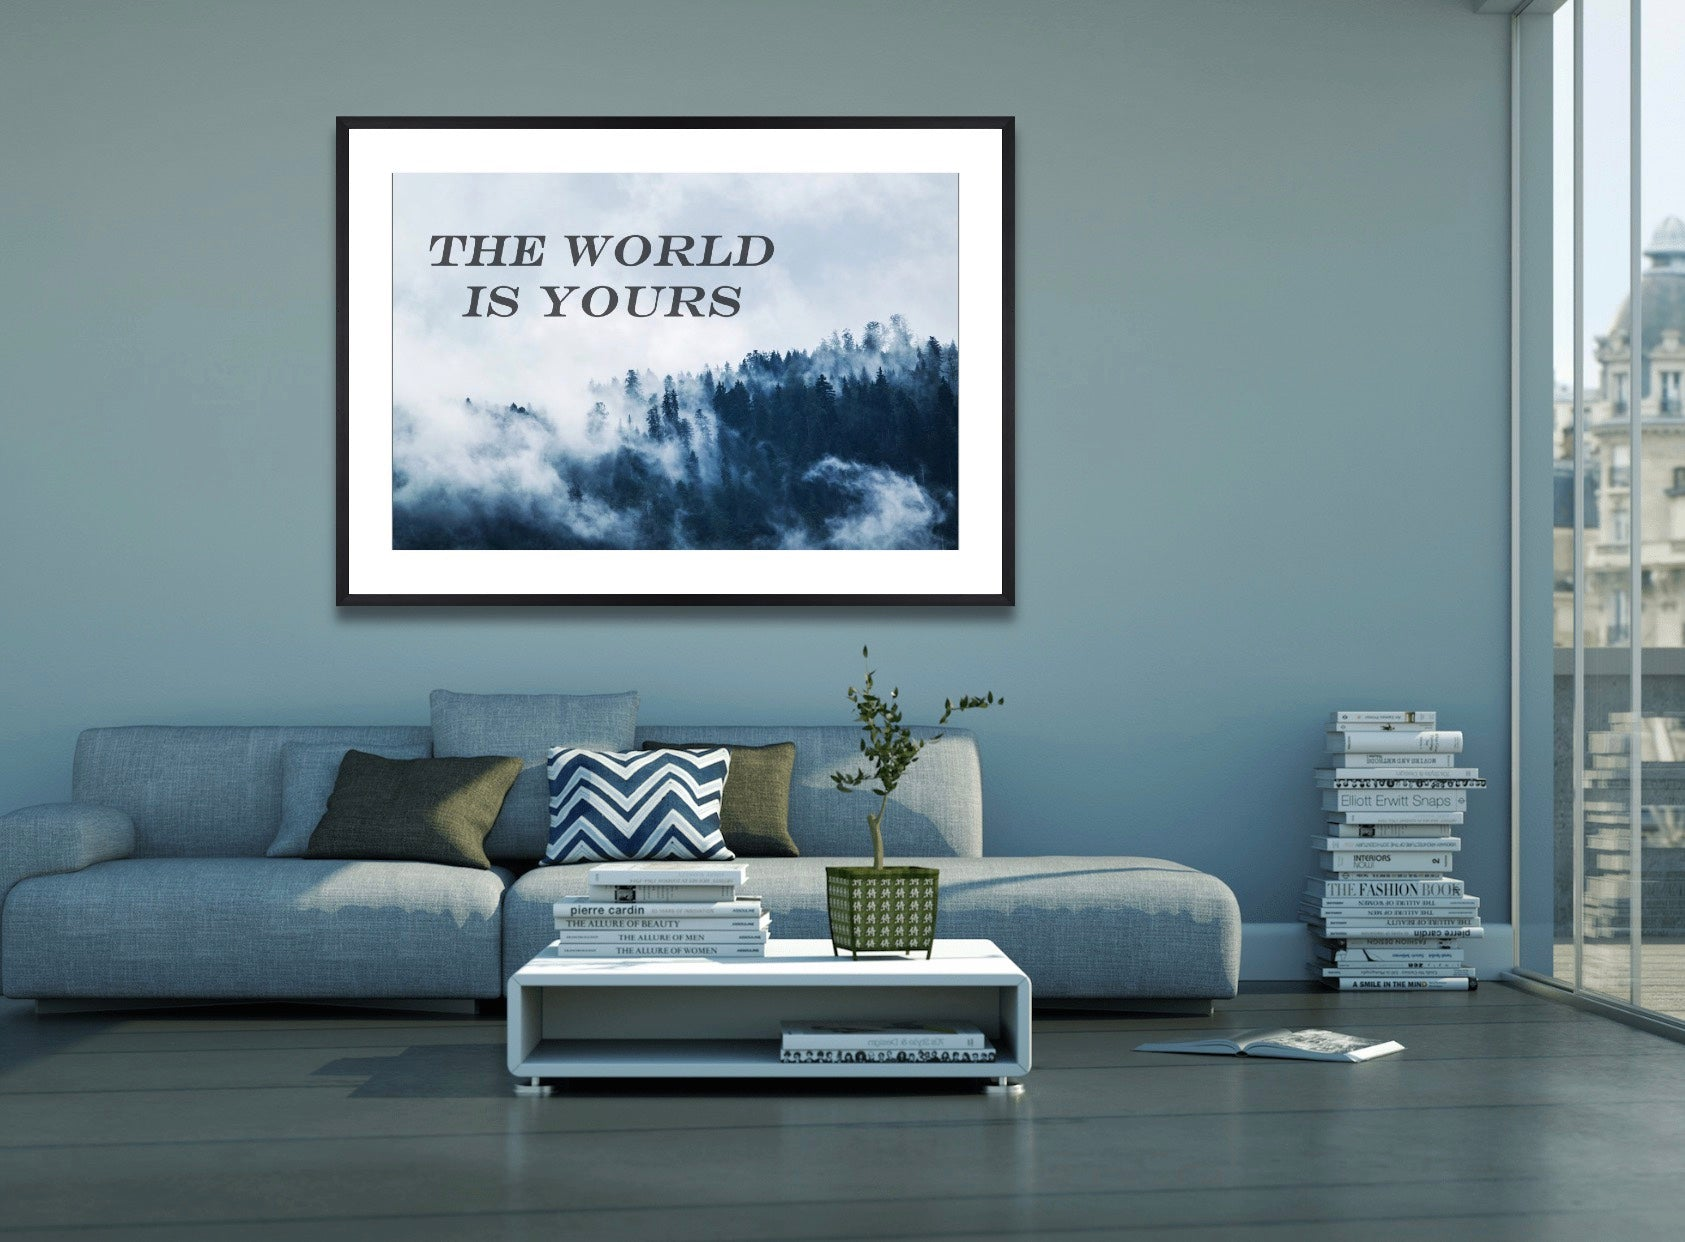 THE WORLD IS YOURS - POSTER